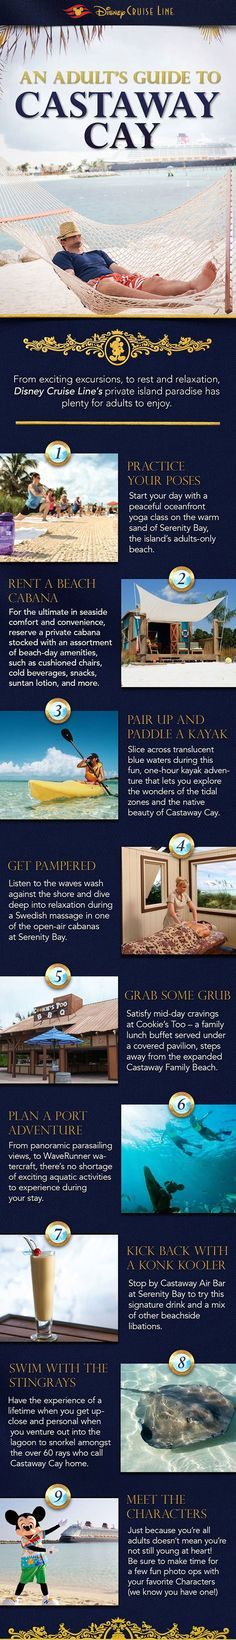 Adult's Guide to Castaway Cay with Disney Cruise Line! Contact me to book your next Disney Cruise. Extra cabin credit available on every Disney Cruise Line booking. karen@mypathunwinding.com 980-292-1505